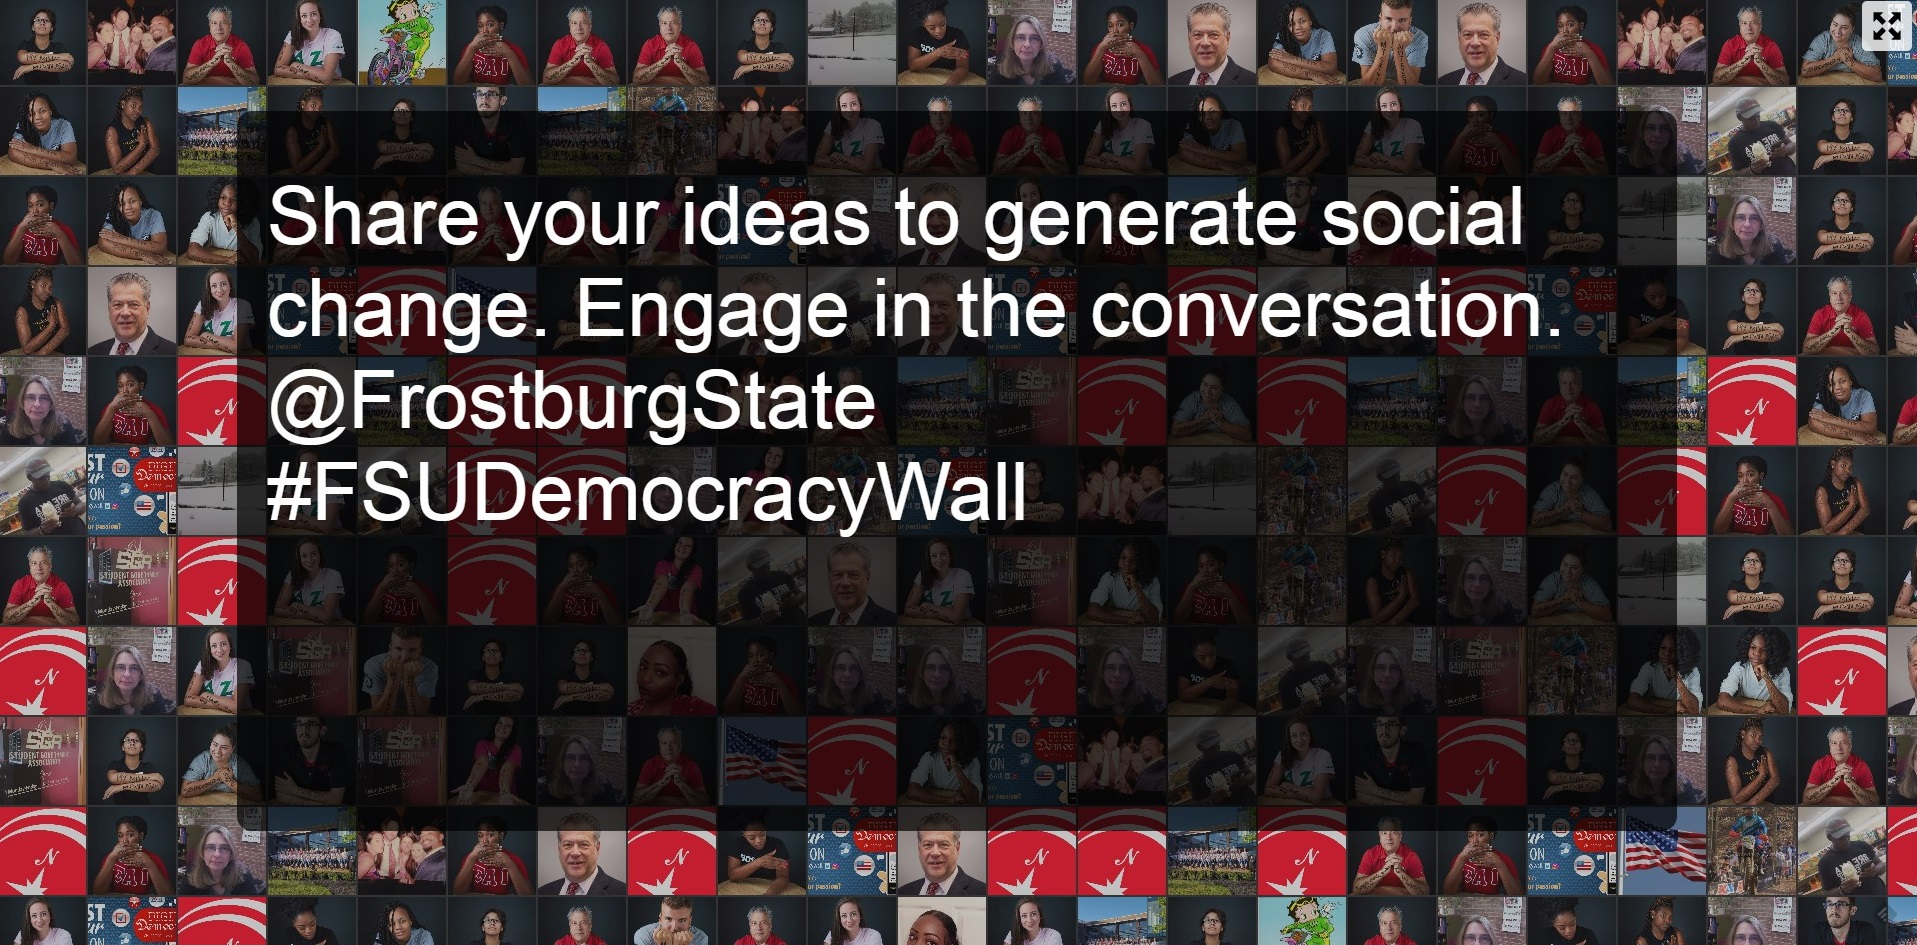 Share your ideas to generate social change. Engage